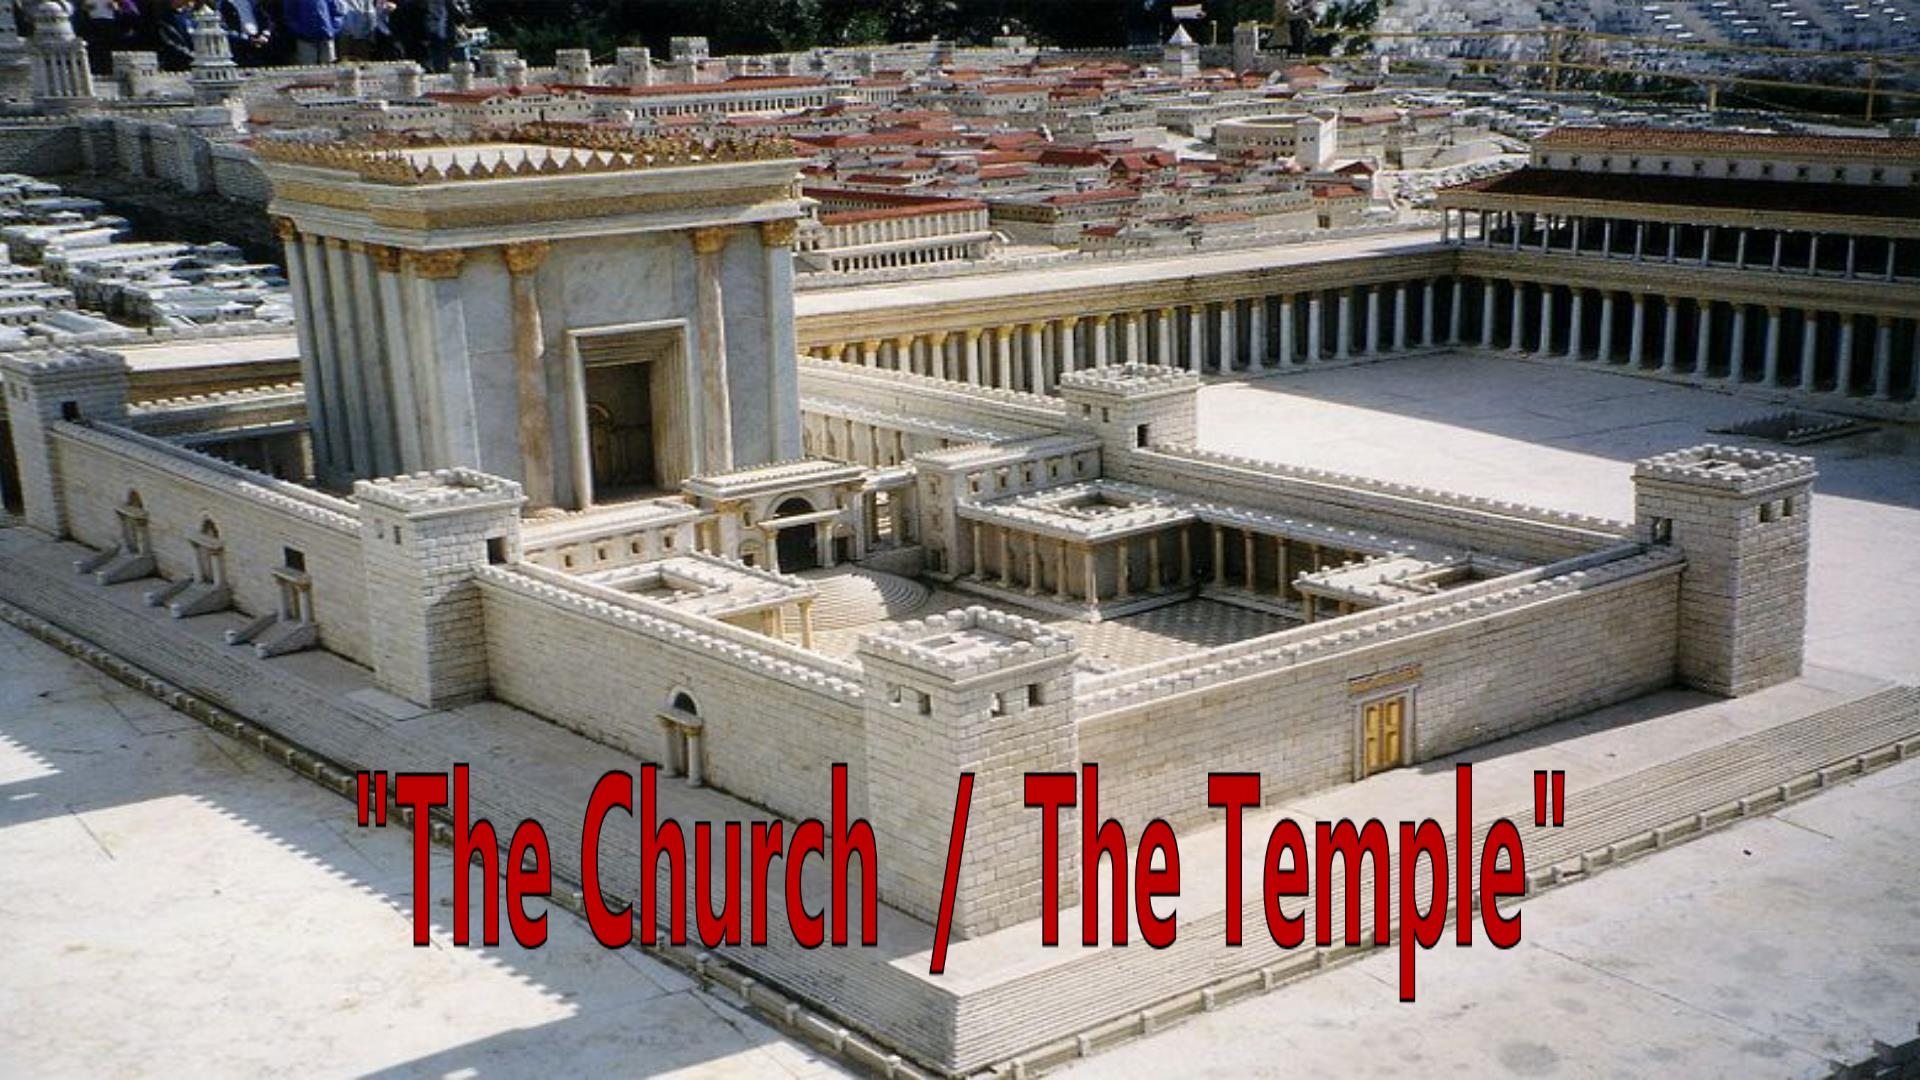 The Church / The Temple